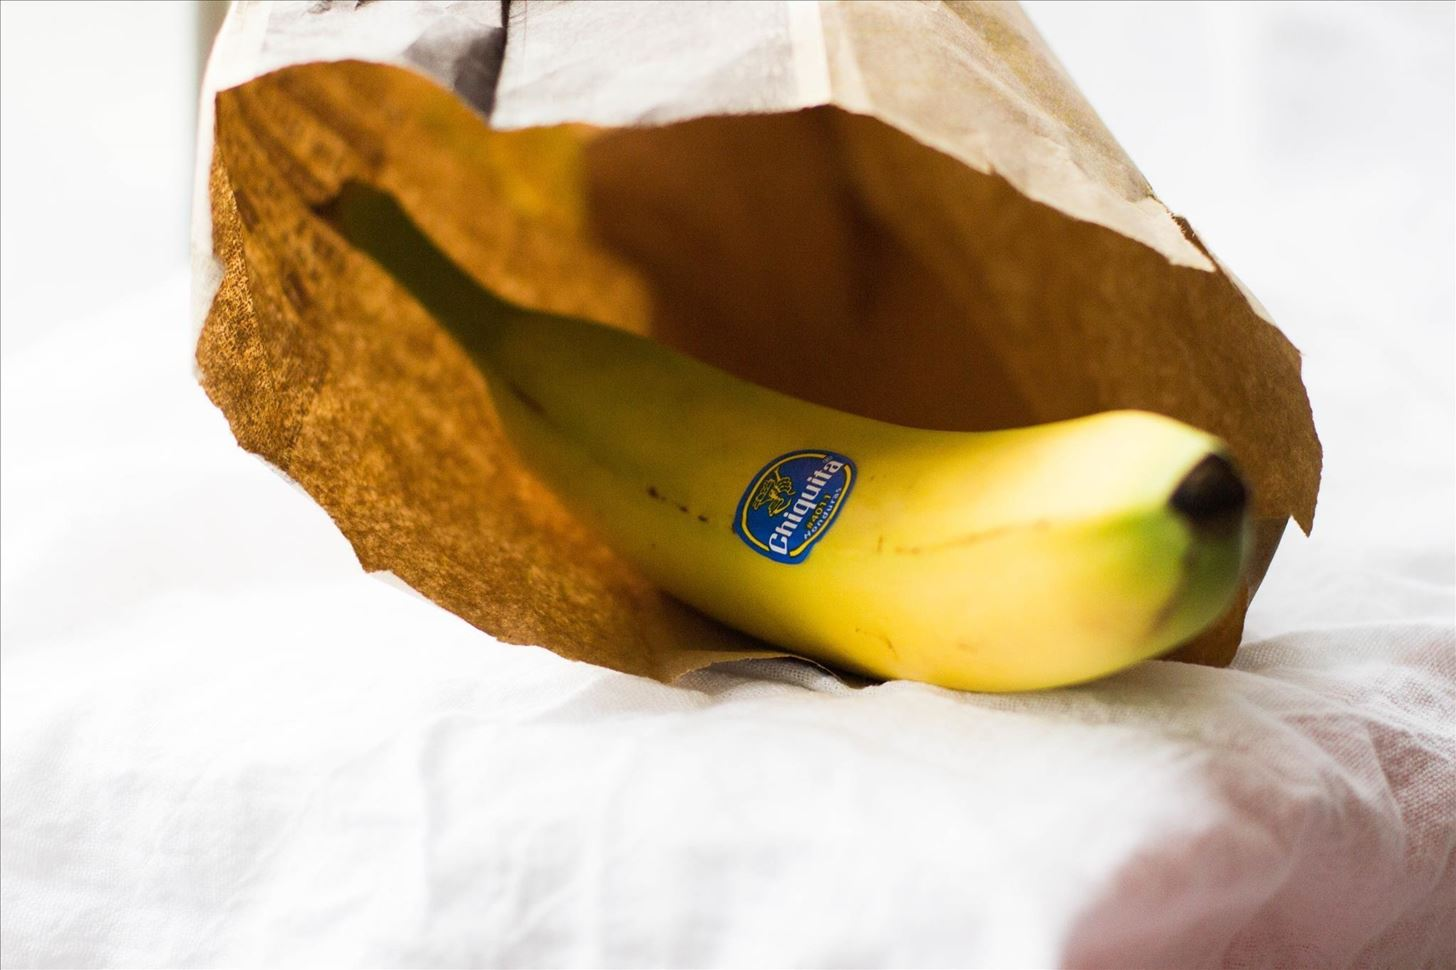 Ripen Bananas Faster with These 3 Simple Tricks